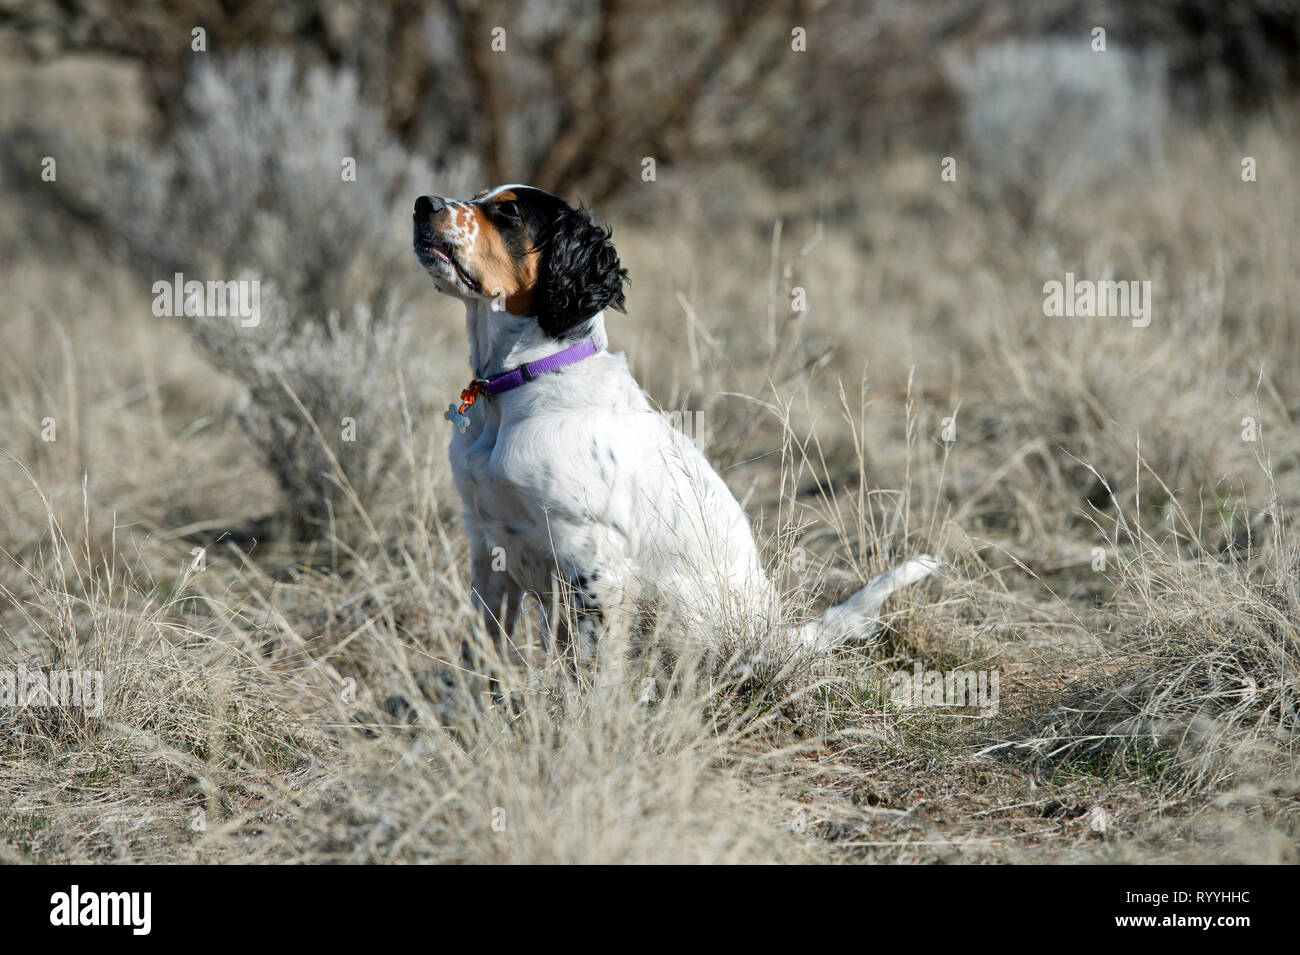 Four-and-a half month old English setter puppy sitting and  looking up at dog trainer - Stock Image